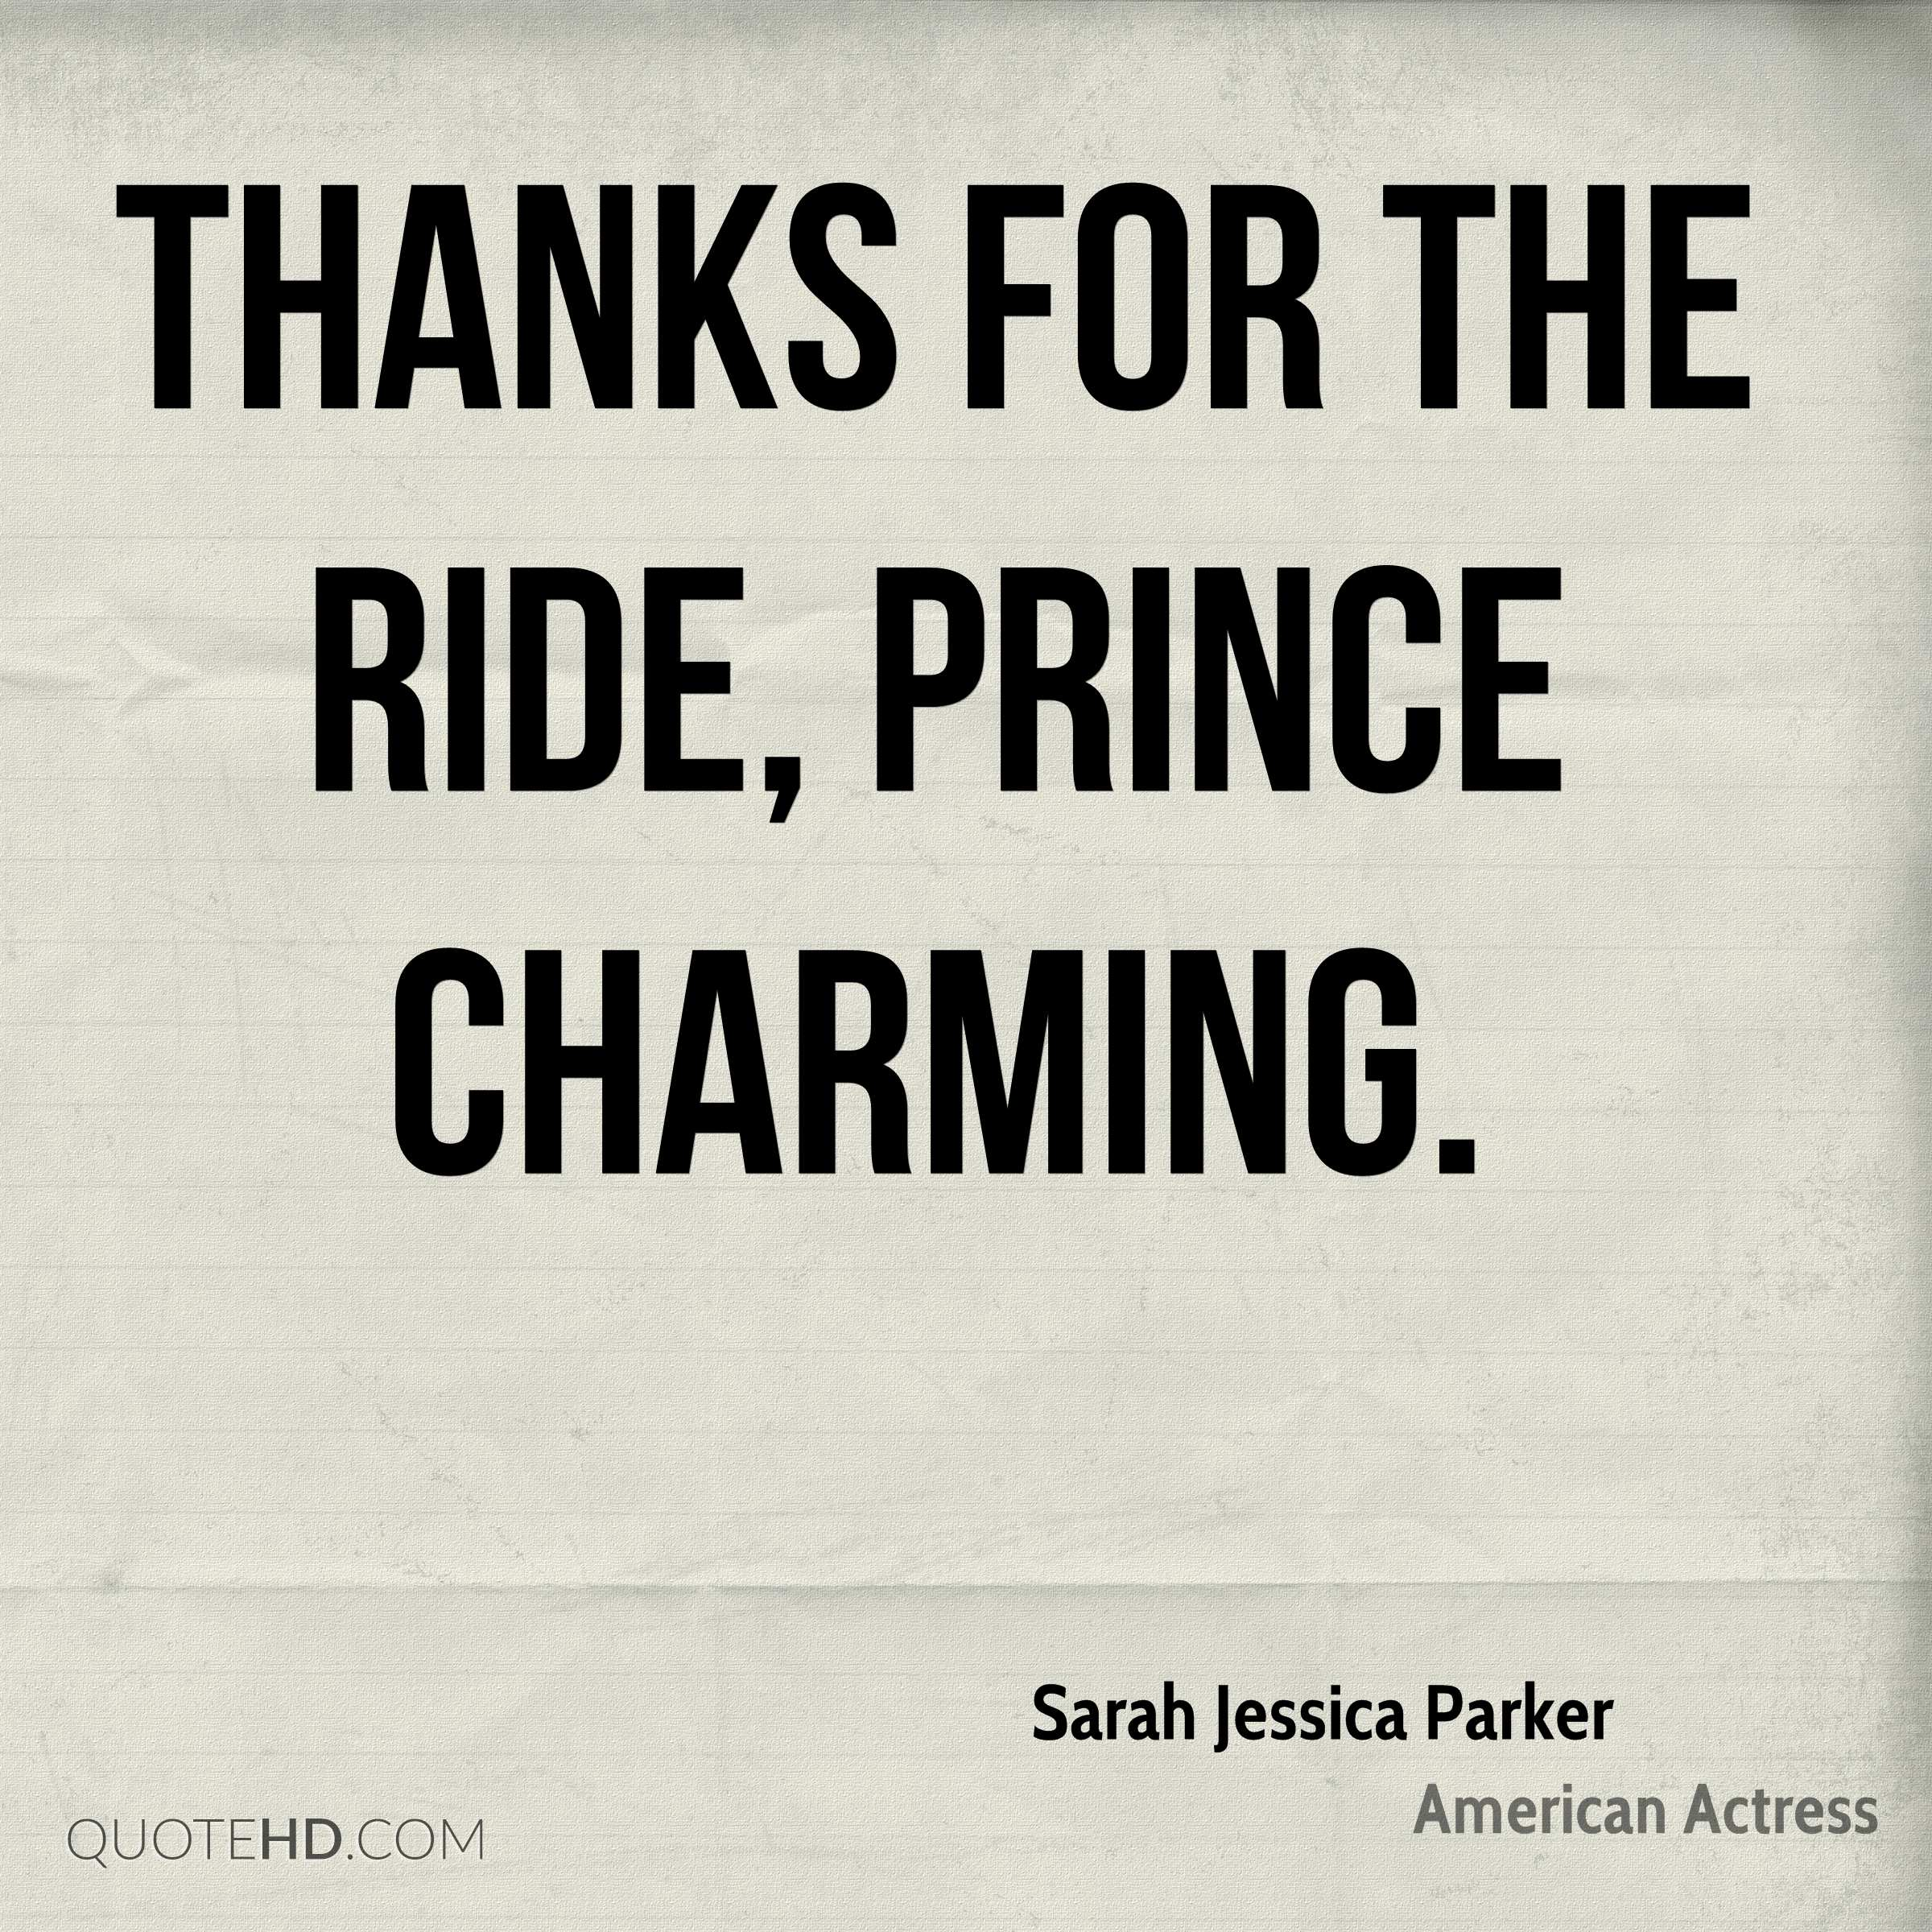 Thanks for the ride, Prince Charming.